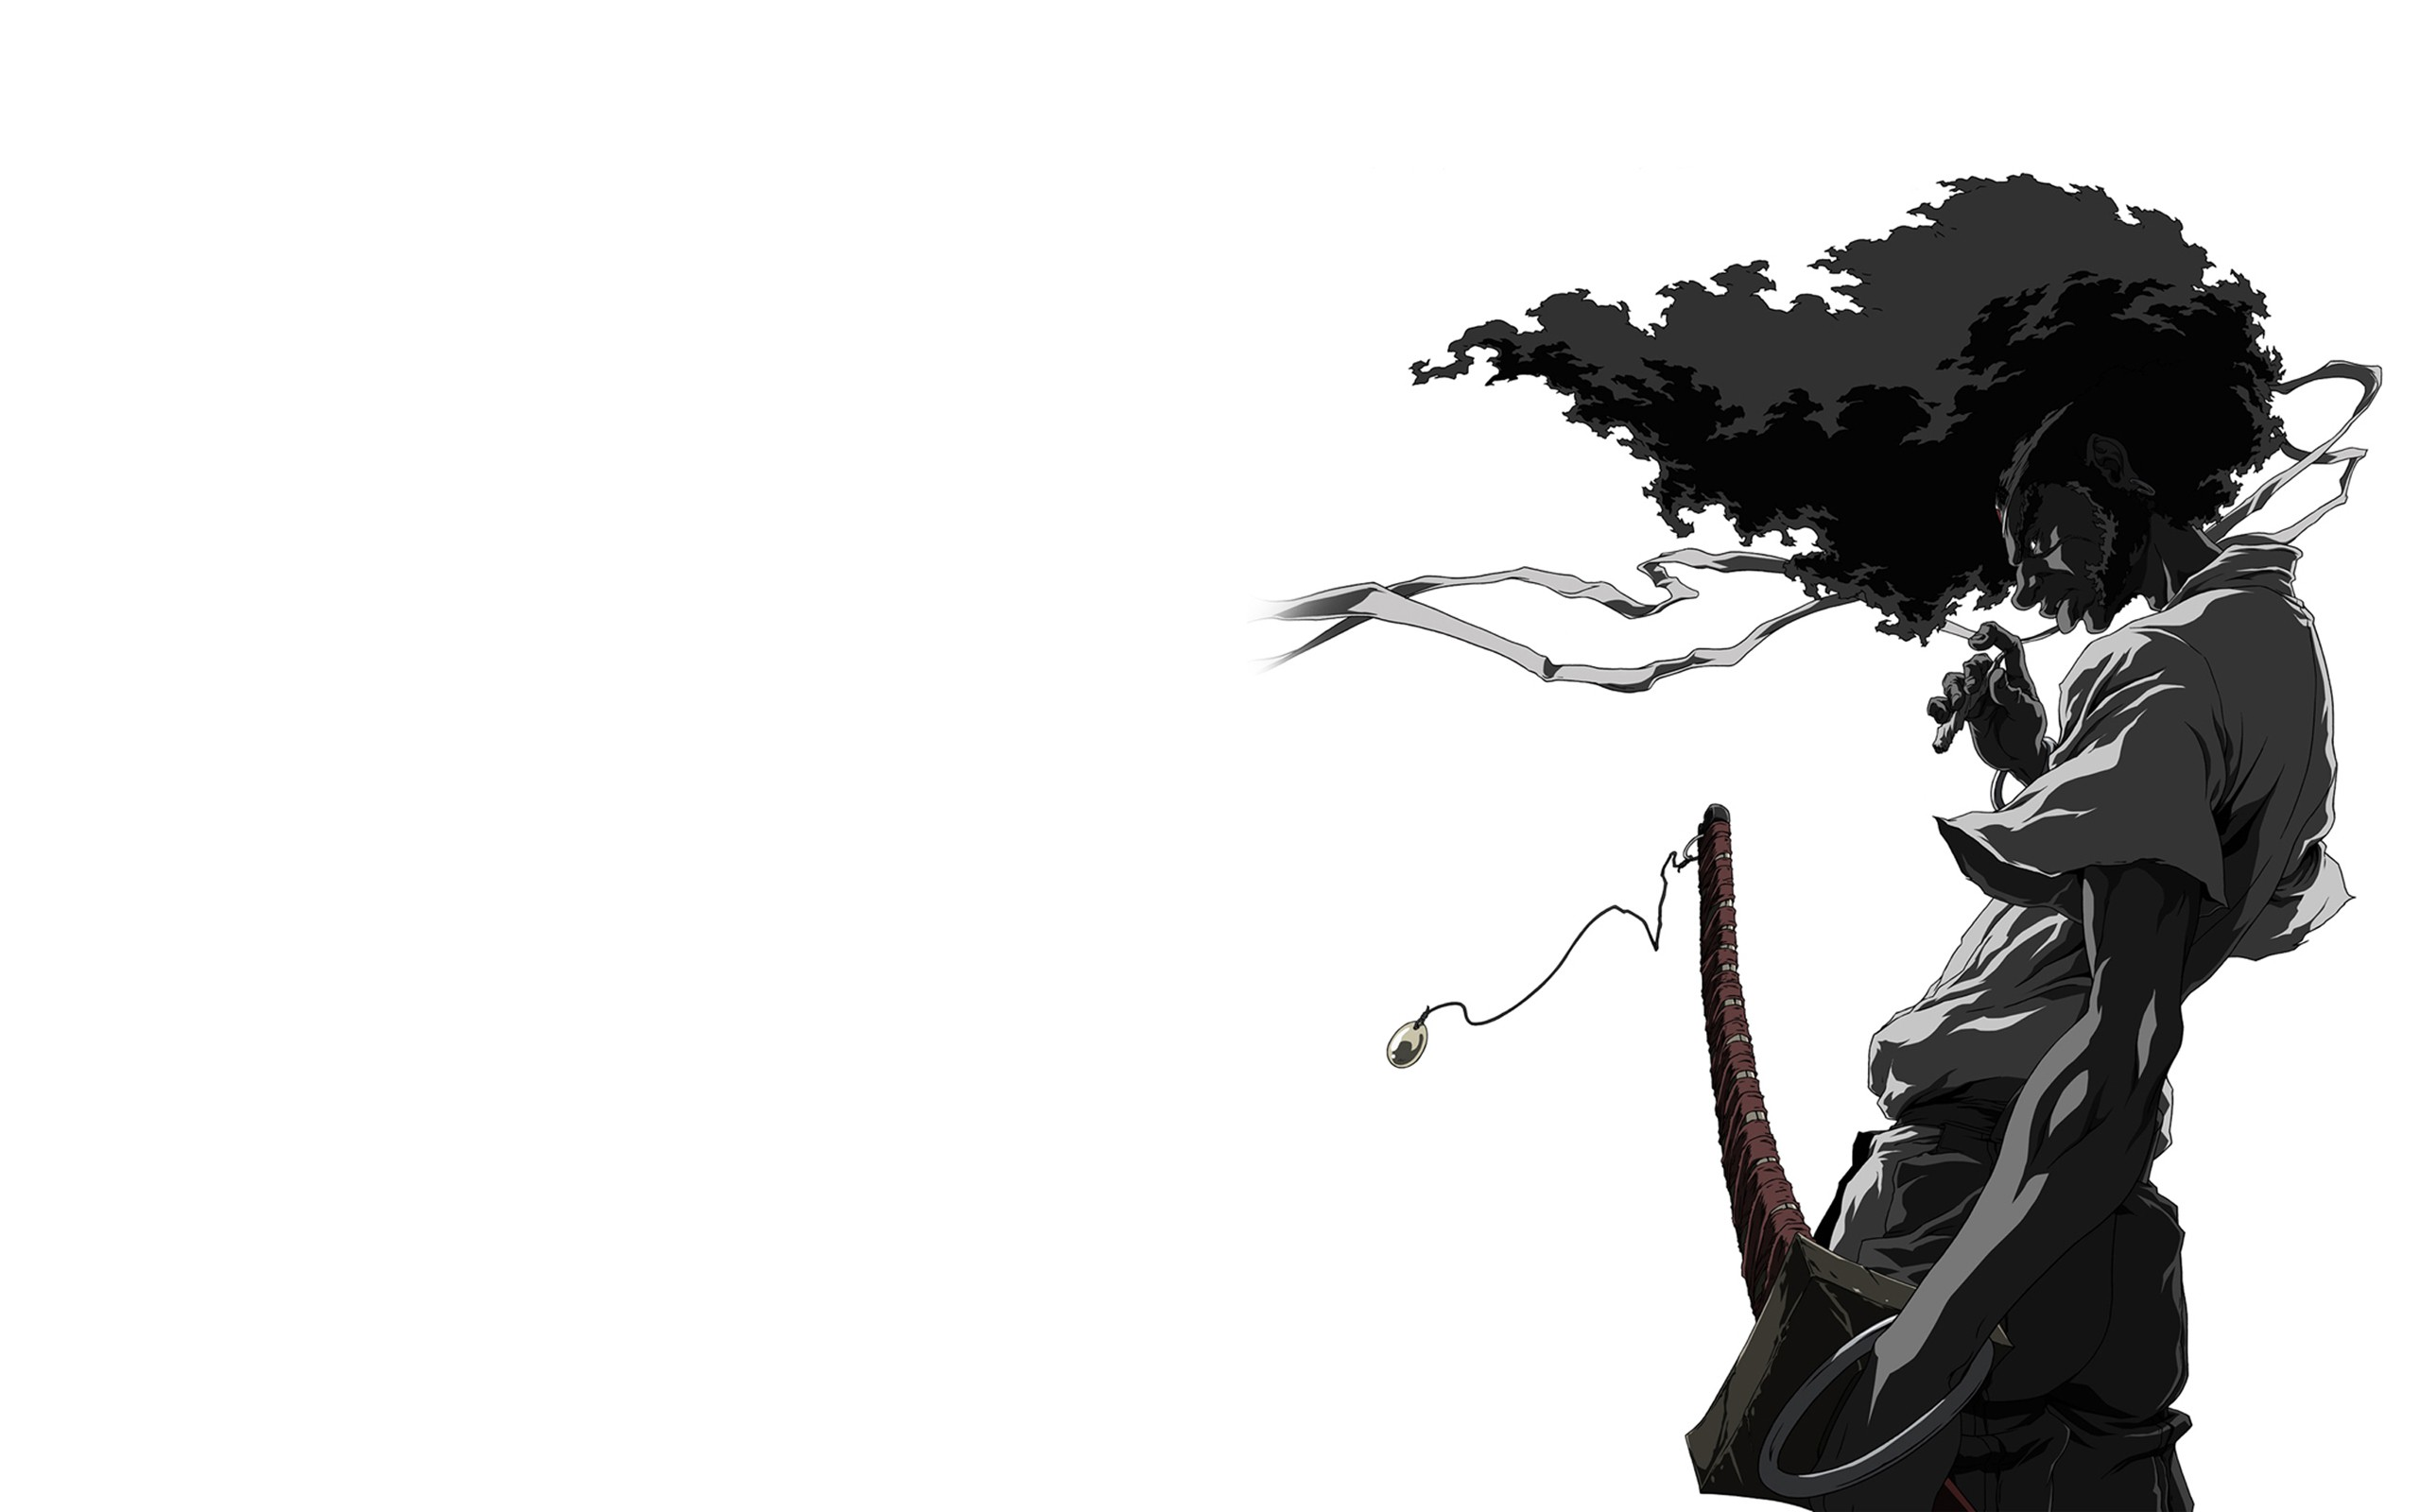 afro samurai iphone wallpaper abstract afro samurai iphone wallpaper 2560x1600